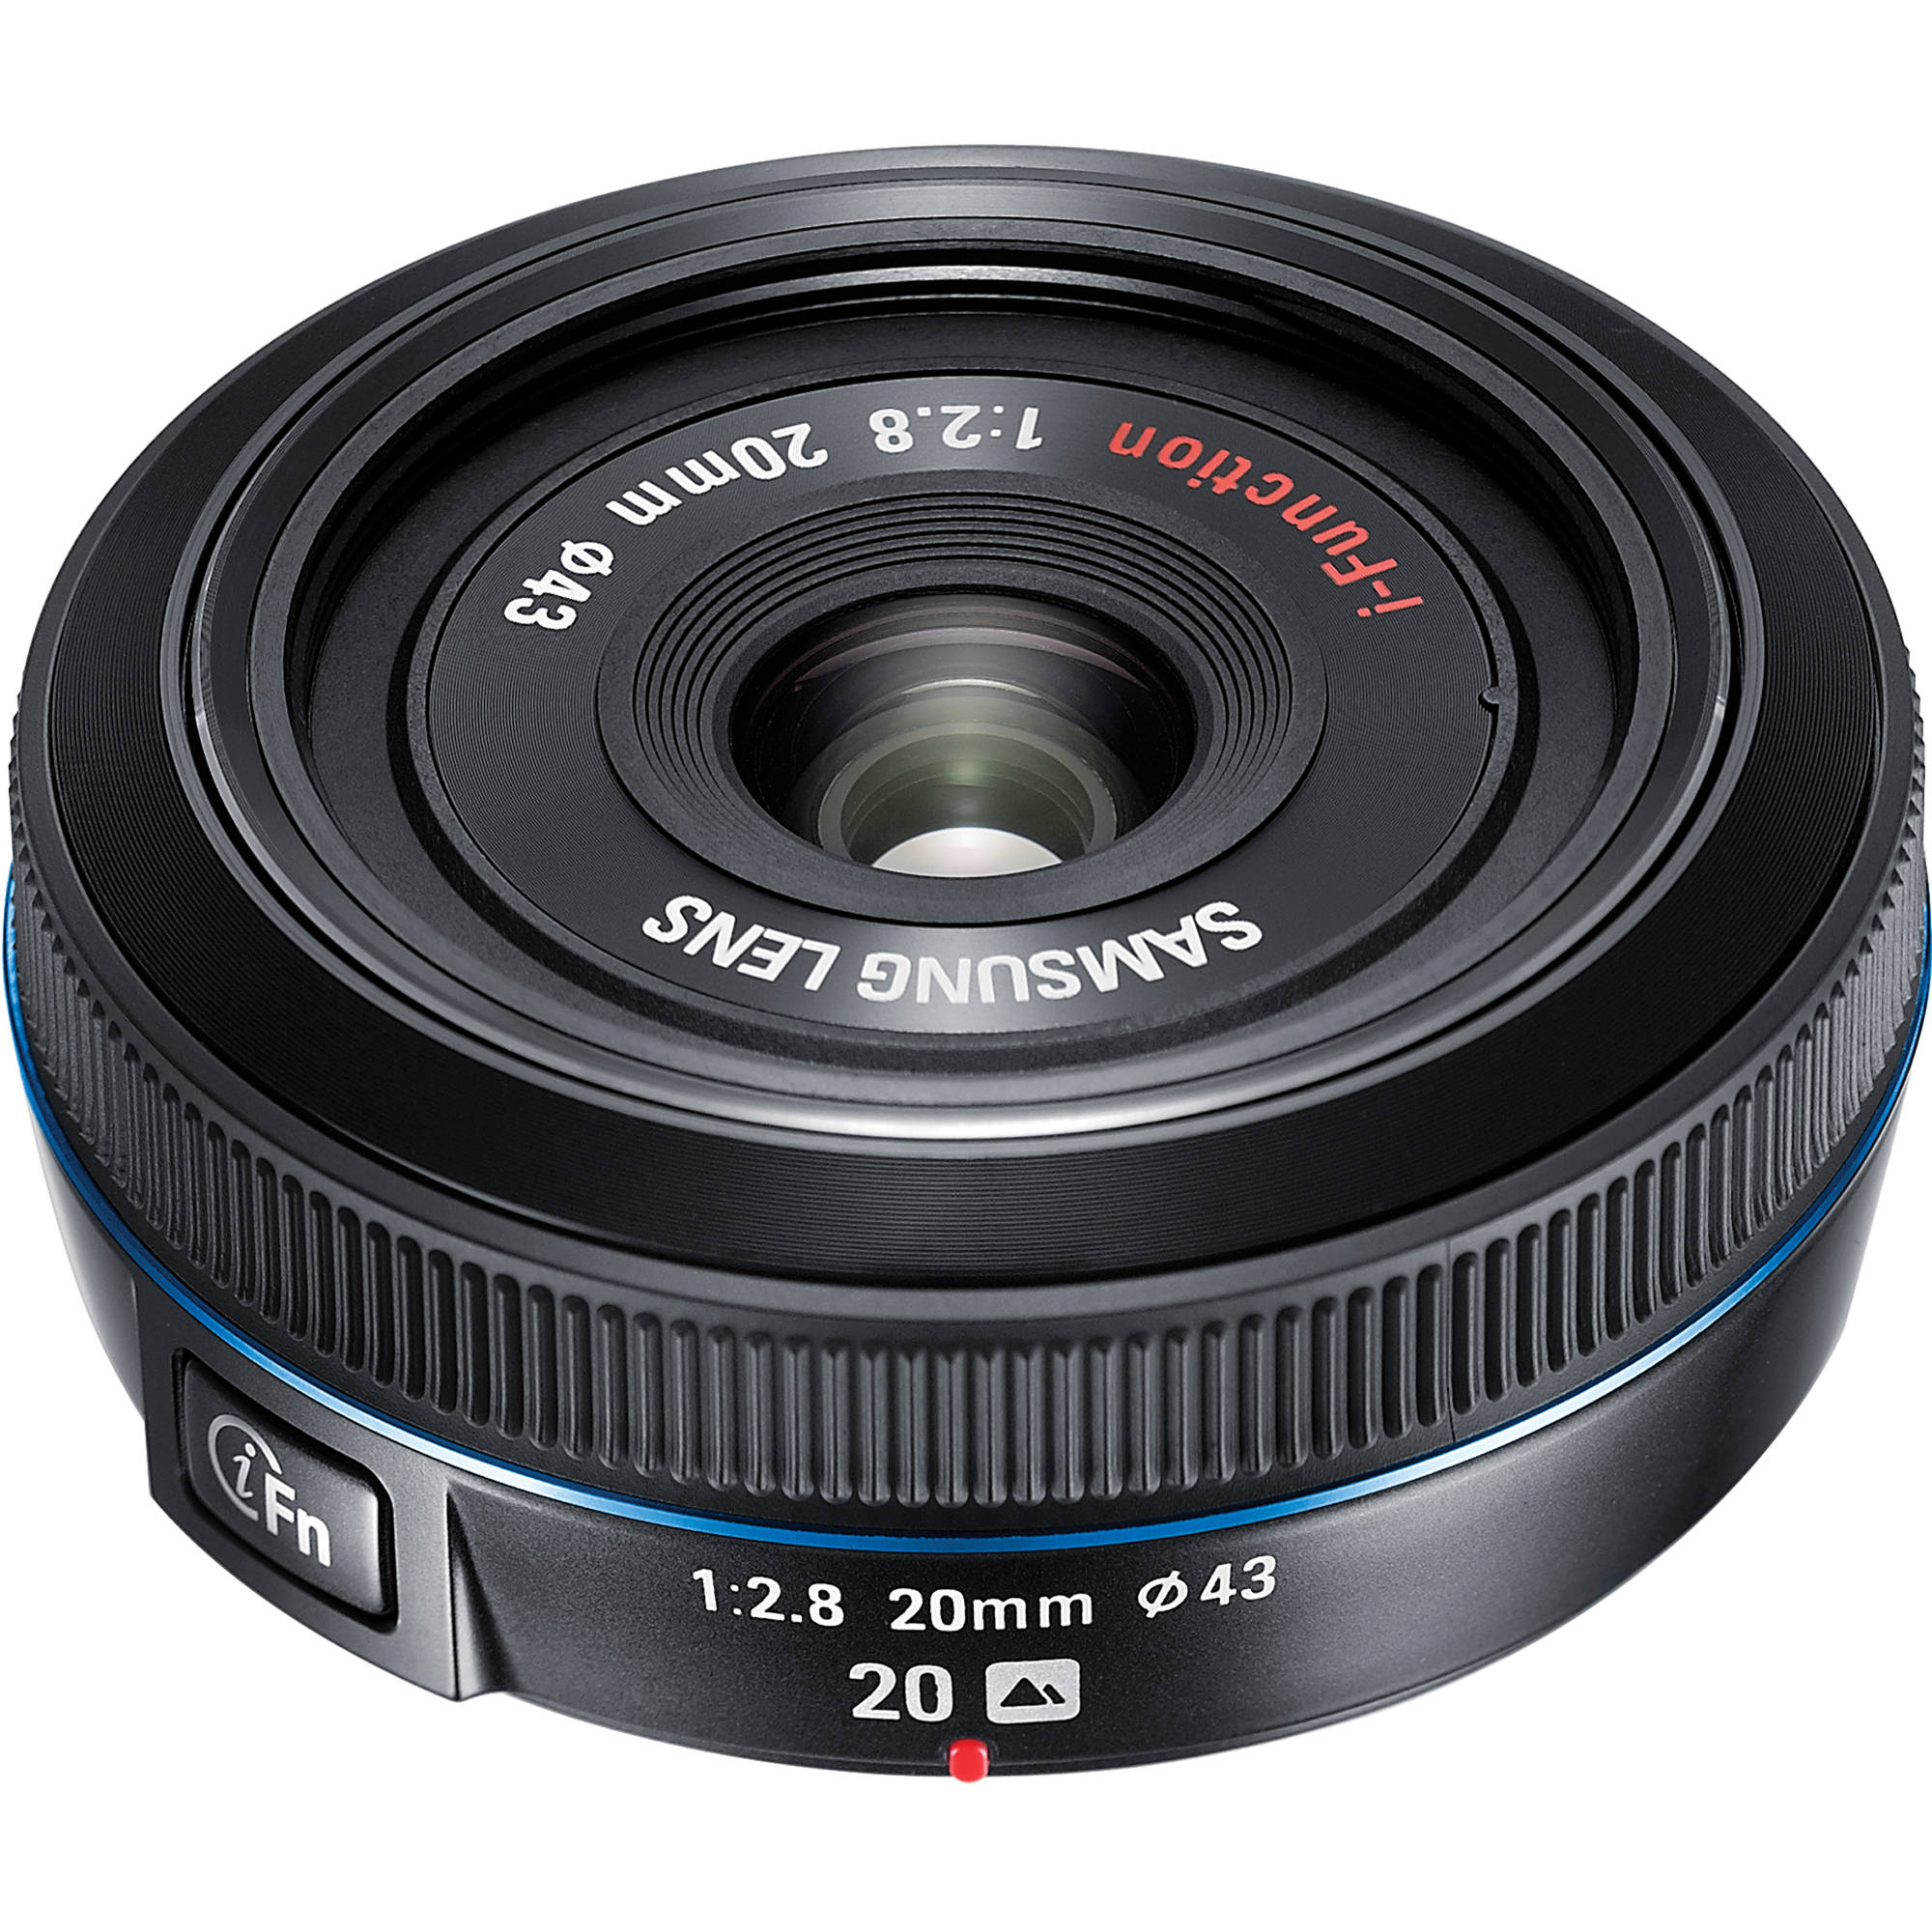 Samsung_EX_W20NB_20mm_F_2_8_Lens_for_740351